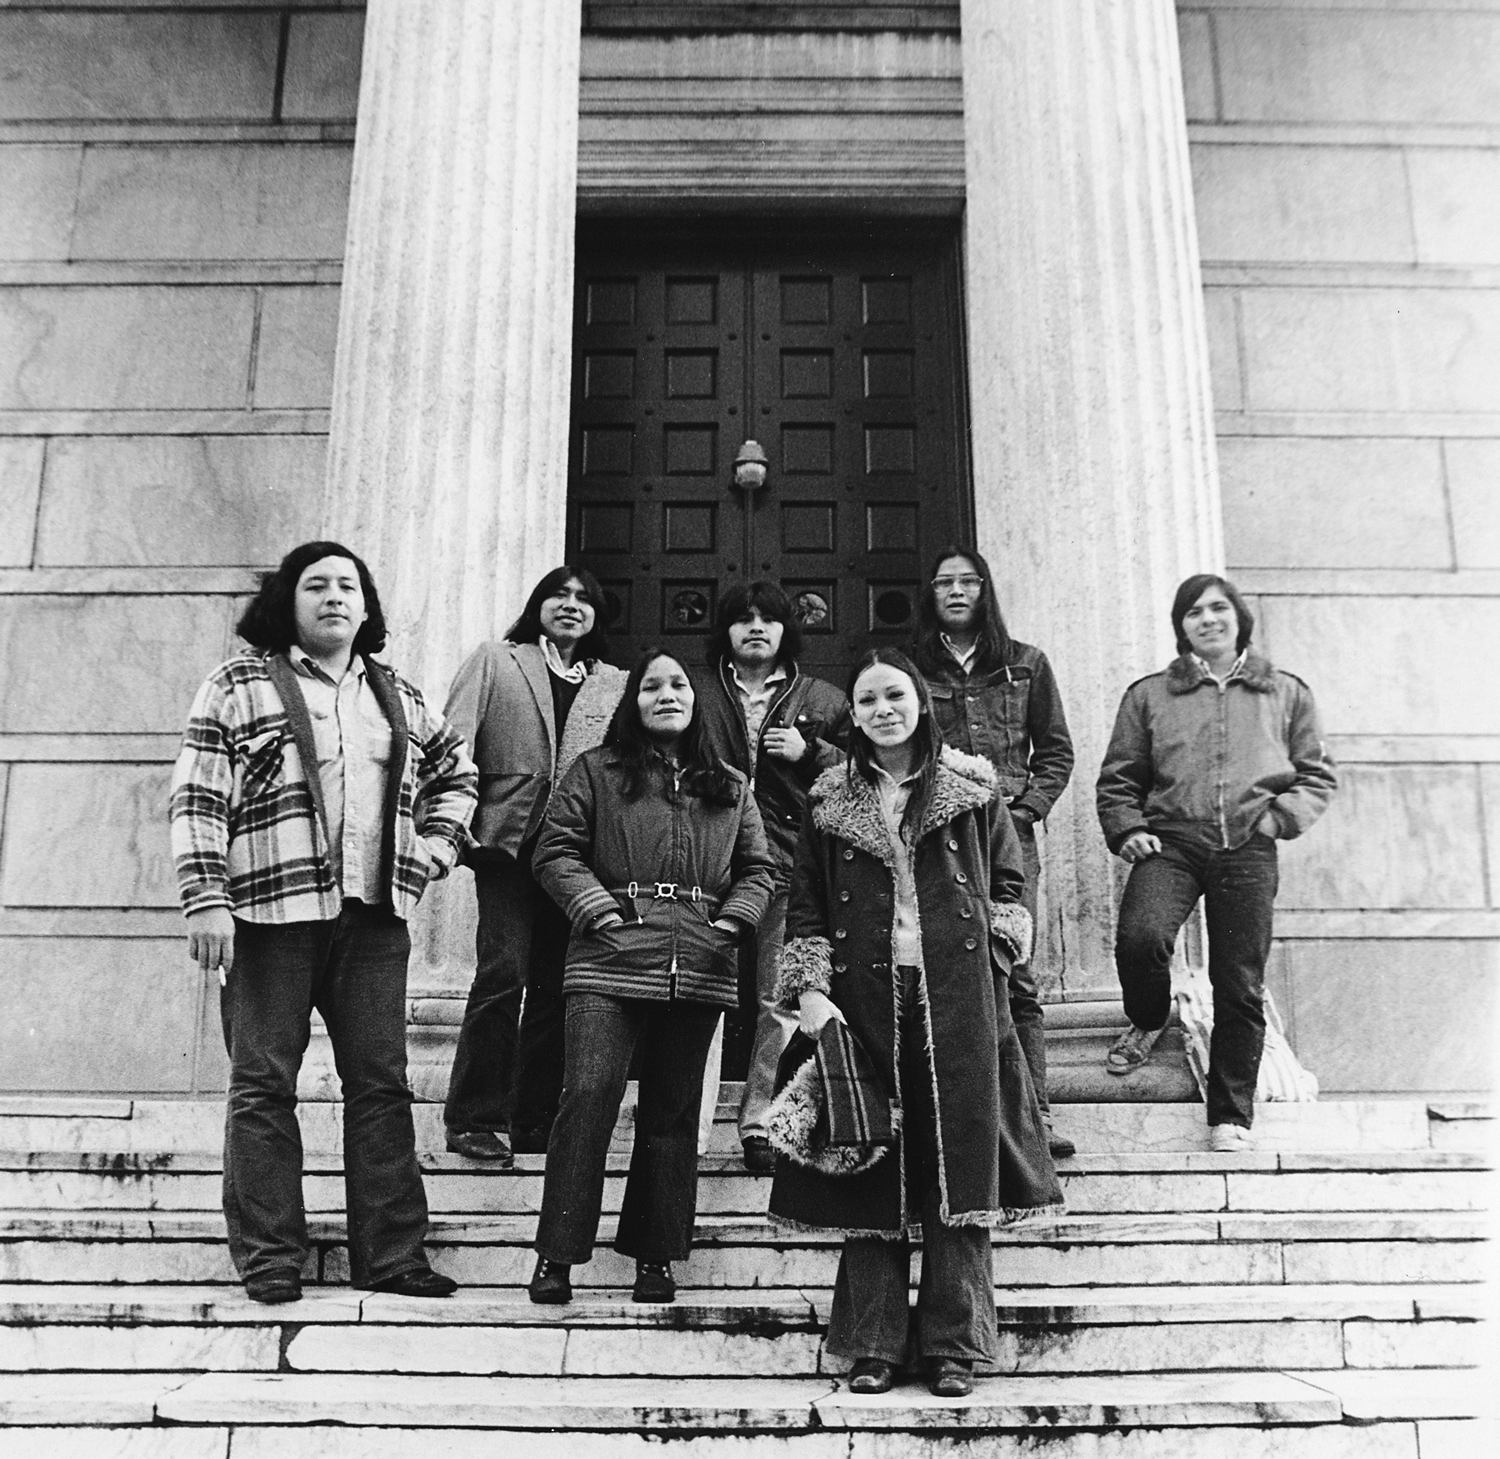 Native students at Princeton posing together in the 1970s.